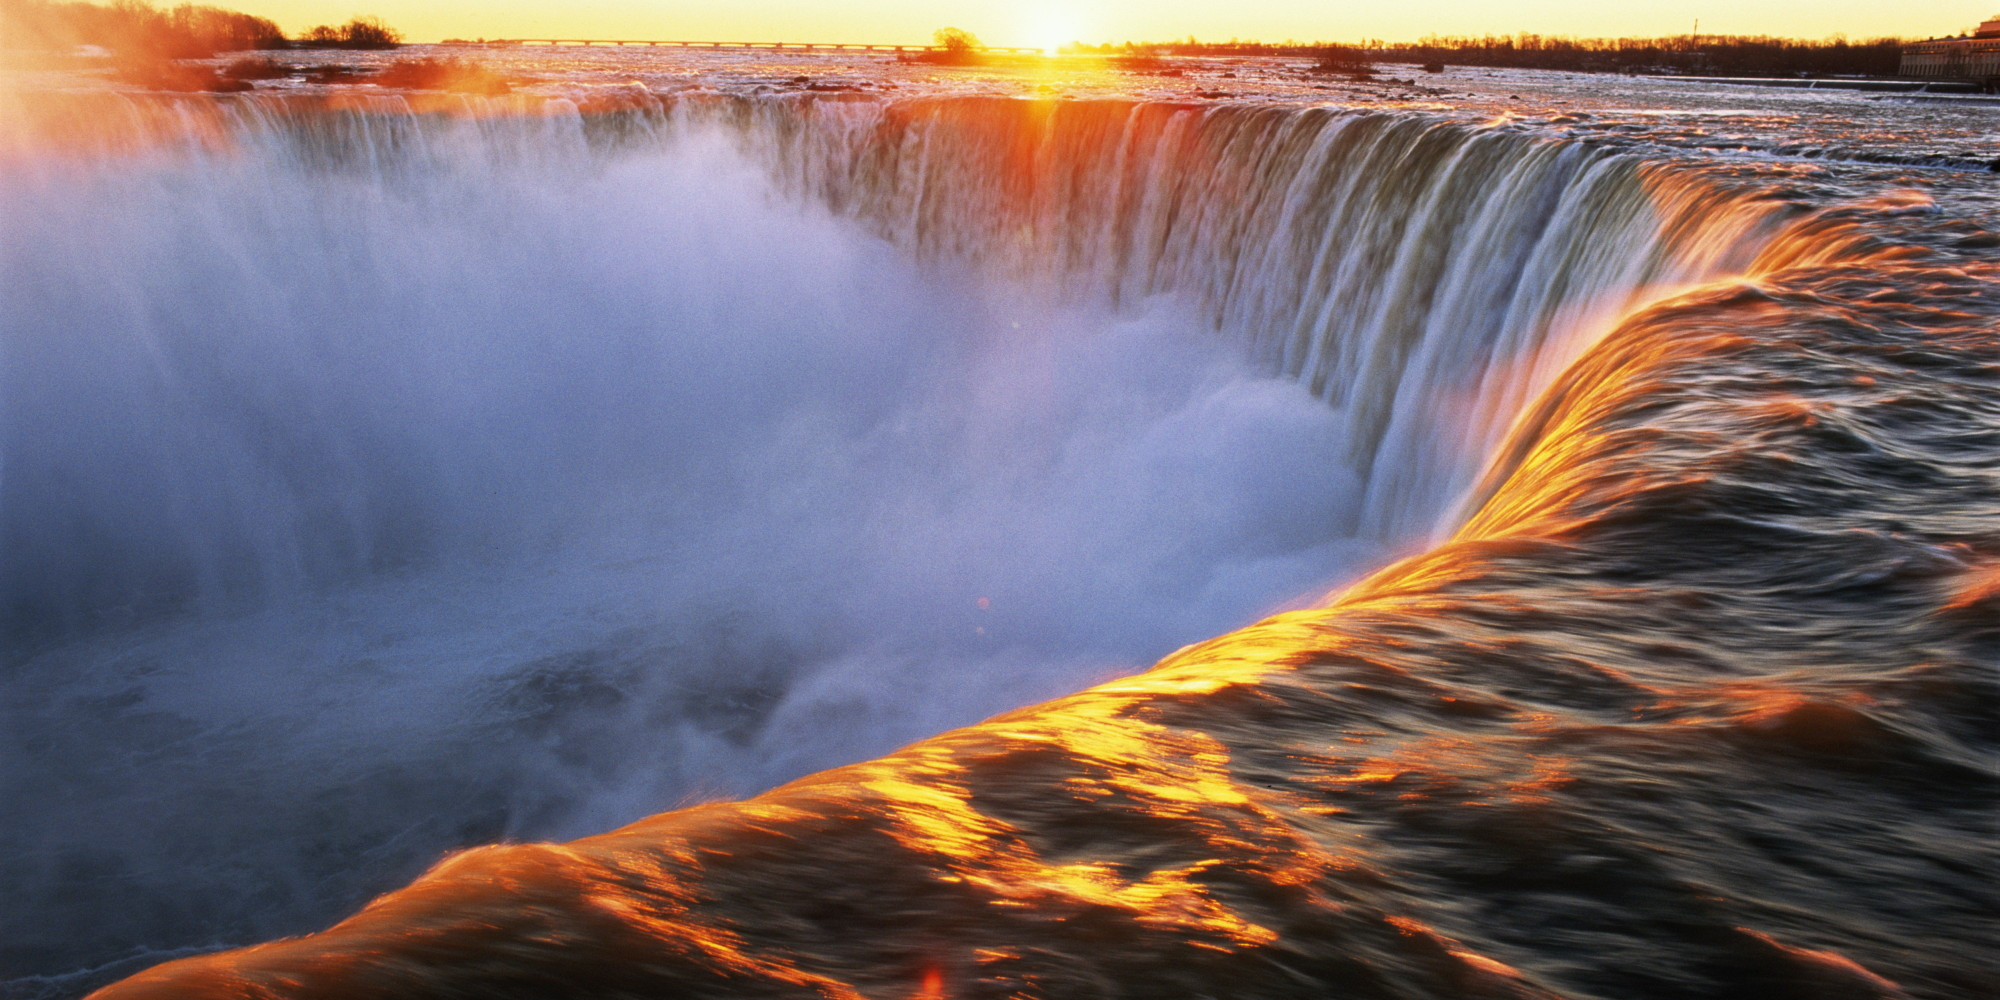 Niagara Falls Night Wallpaper Photos Must Visit The Breathtaking Niagara Falls The Wow Style